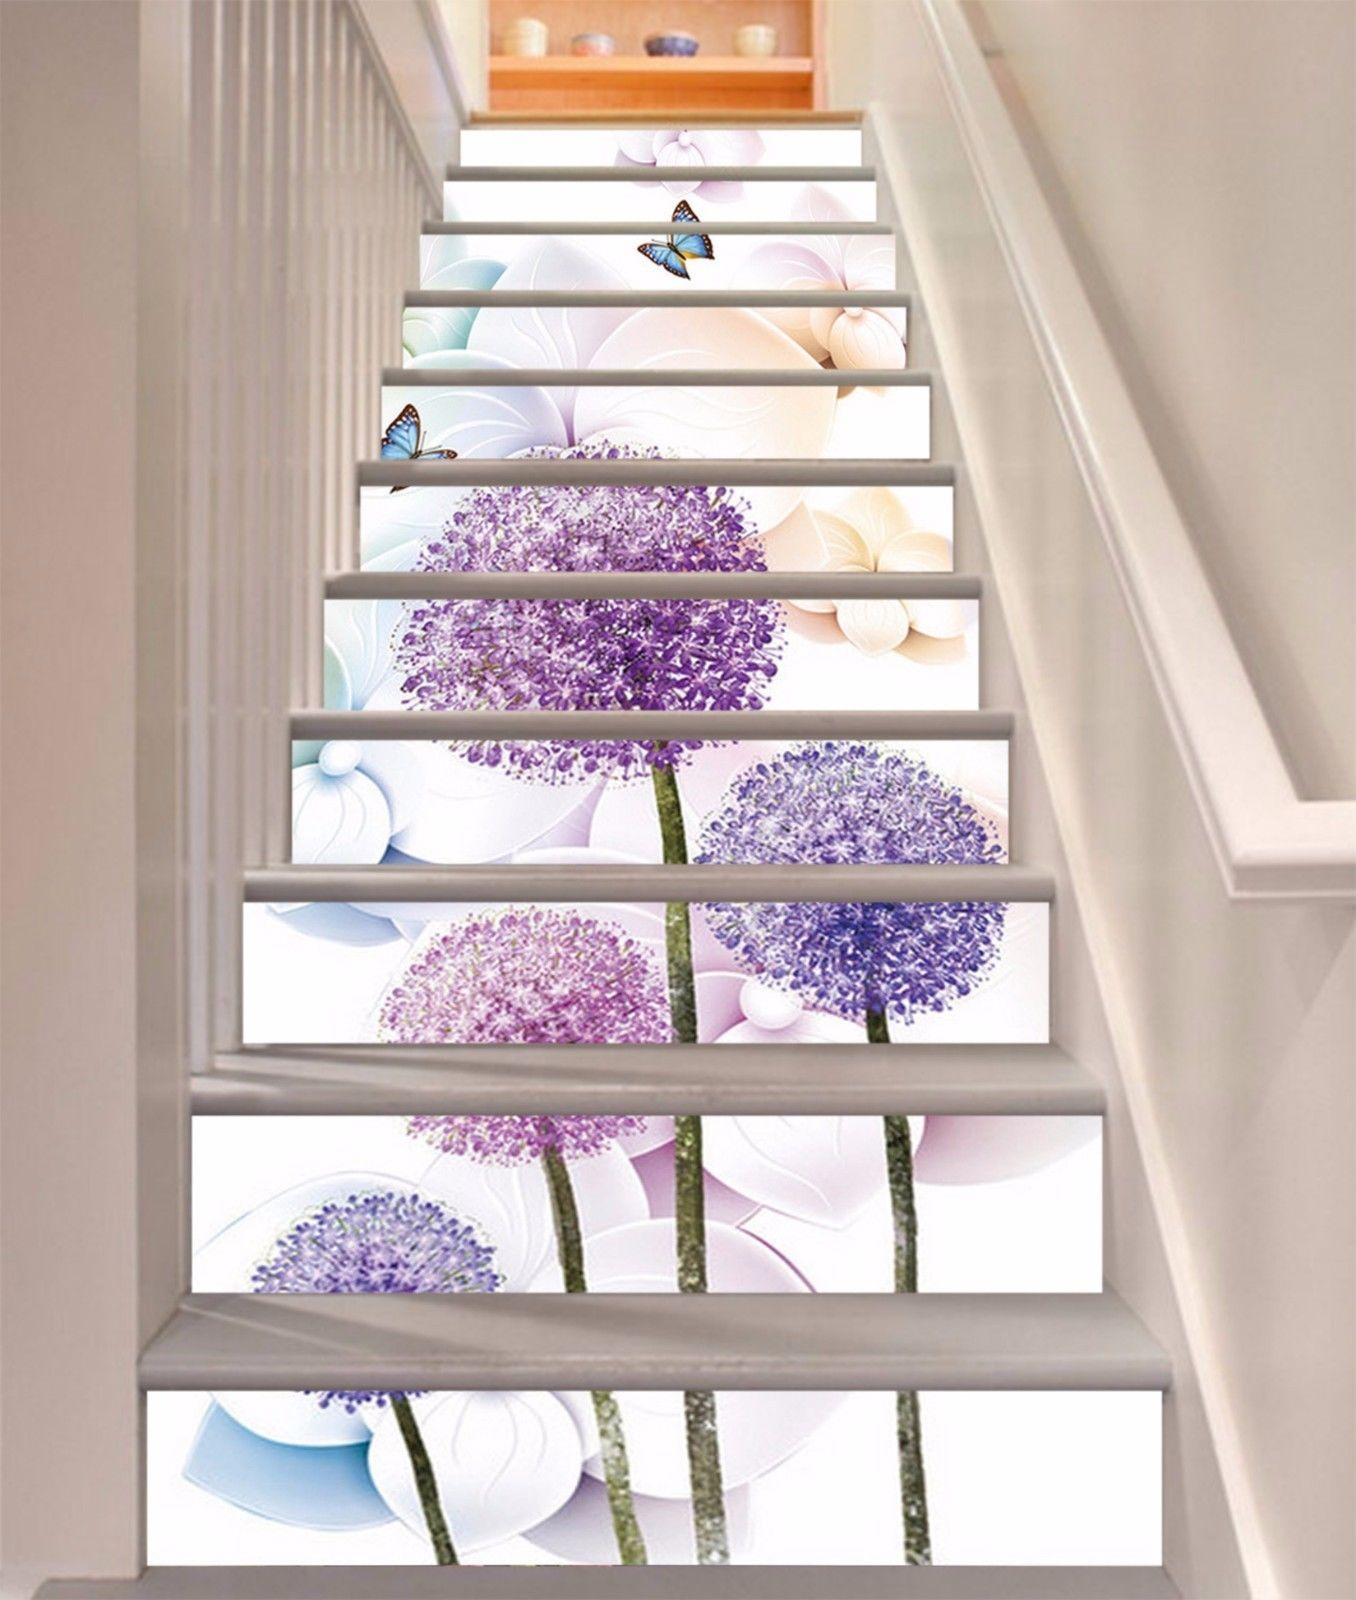 3D Shiny Flower 07 Stairs Risers Decoration Mural Vinyl Decal